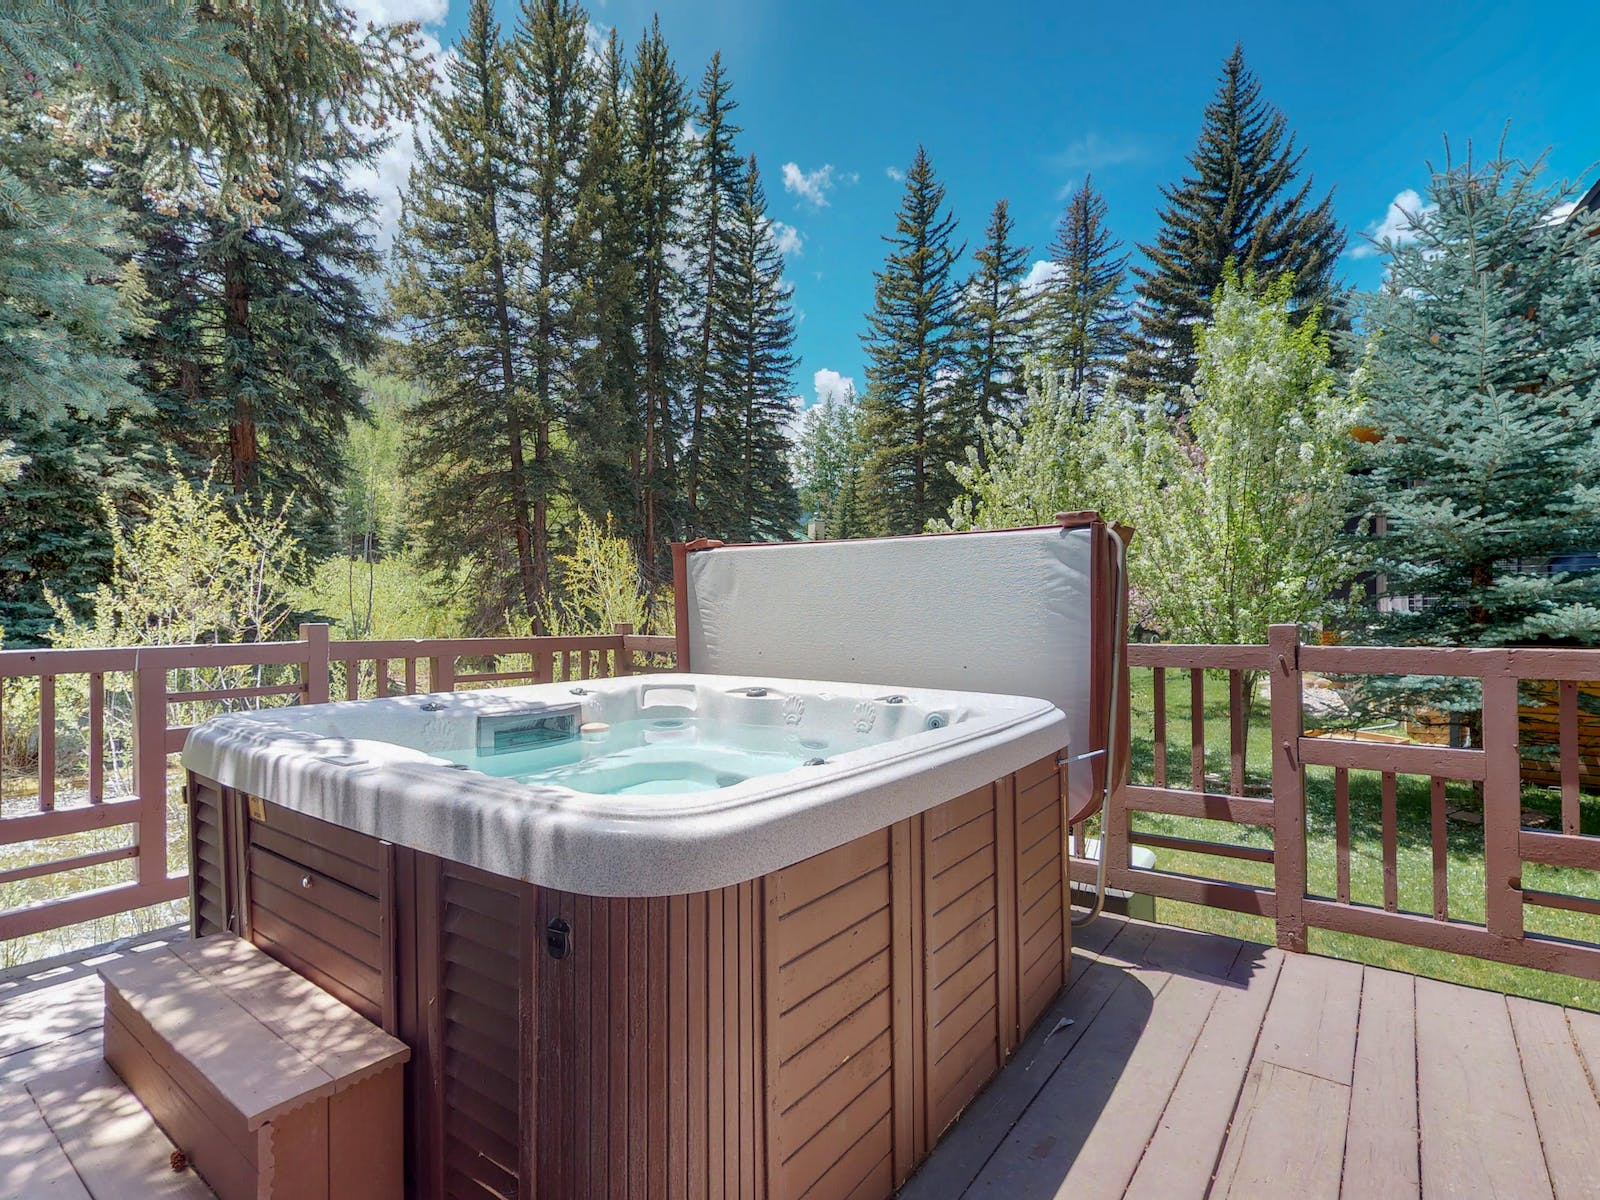 8 Breathtaking Colorado Vacation Cabin Rentals With Hot Tubs Vacasa